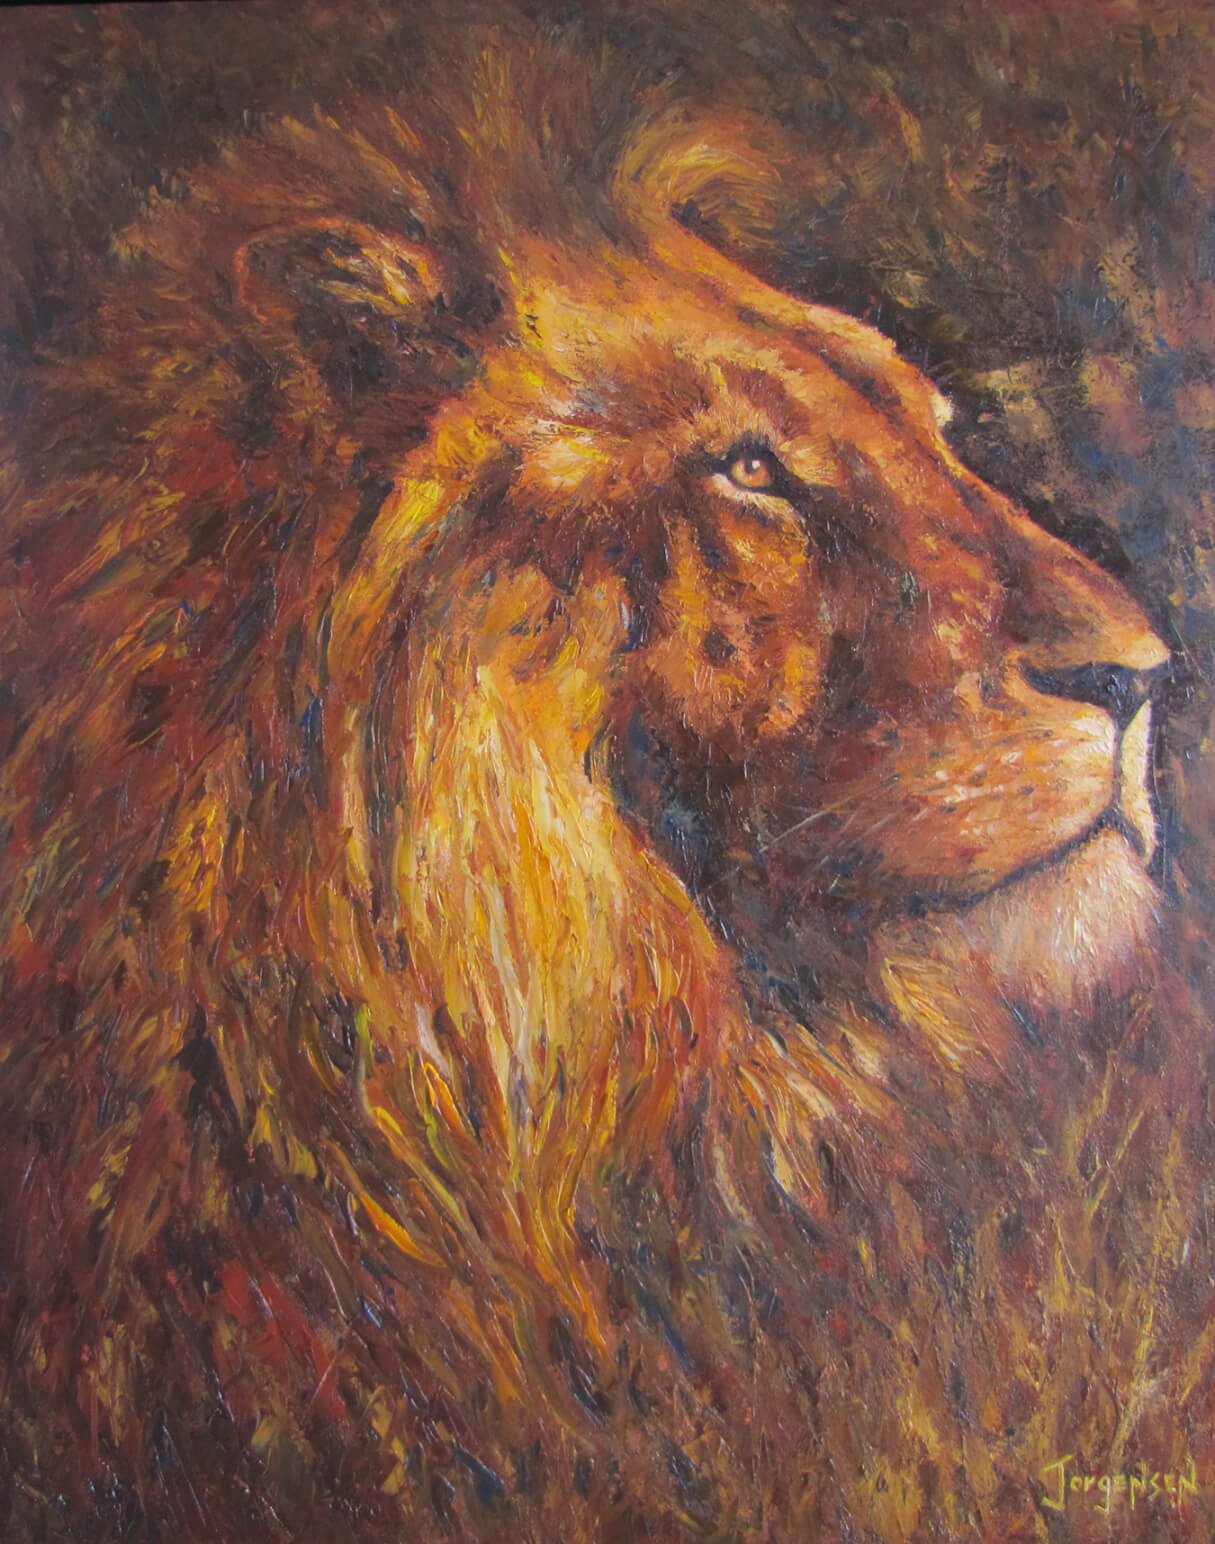 African King painting by Agnes Jorgensen